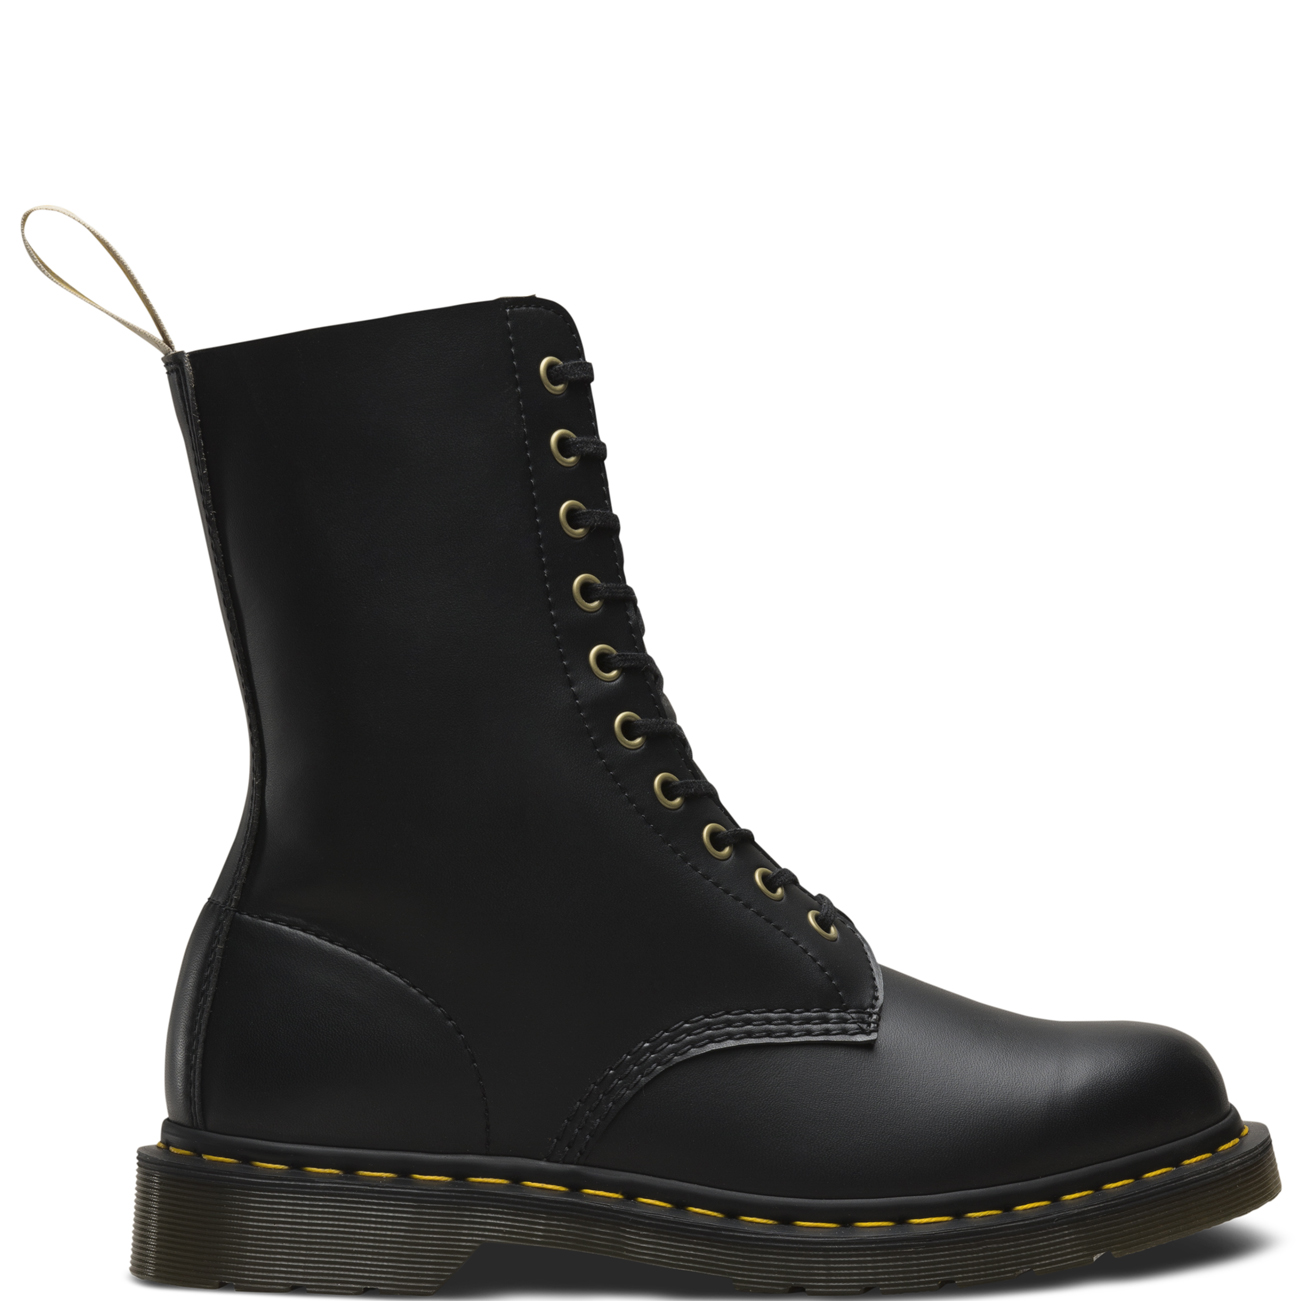 e54f389535b5 Unisex Adults Dr Martens 1460 Vegan Originals Punk Work Mid Calf ...